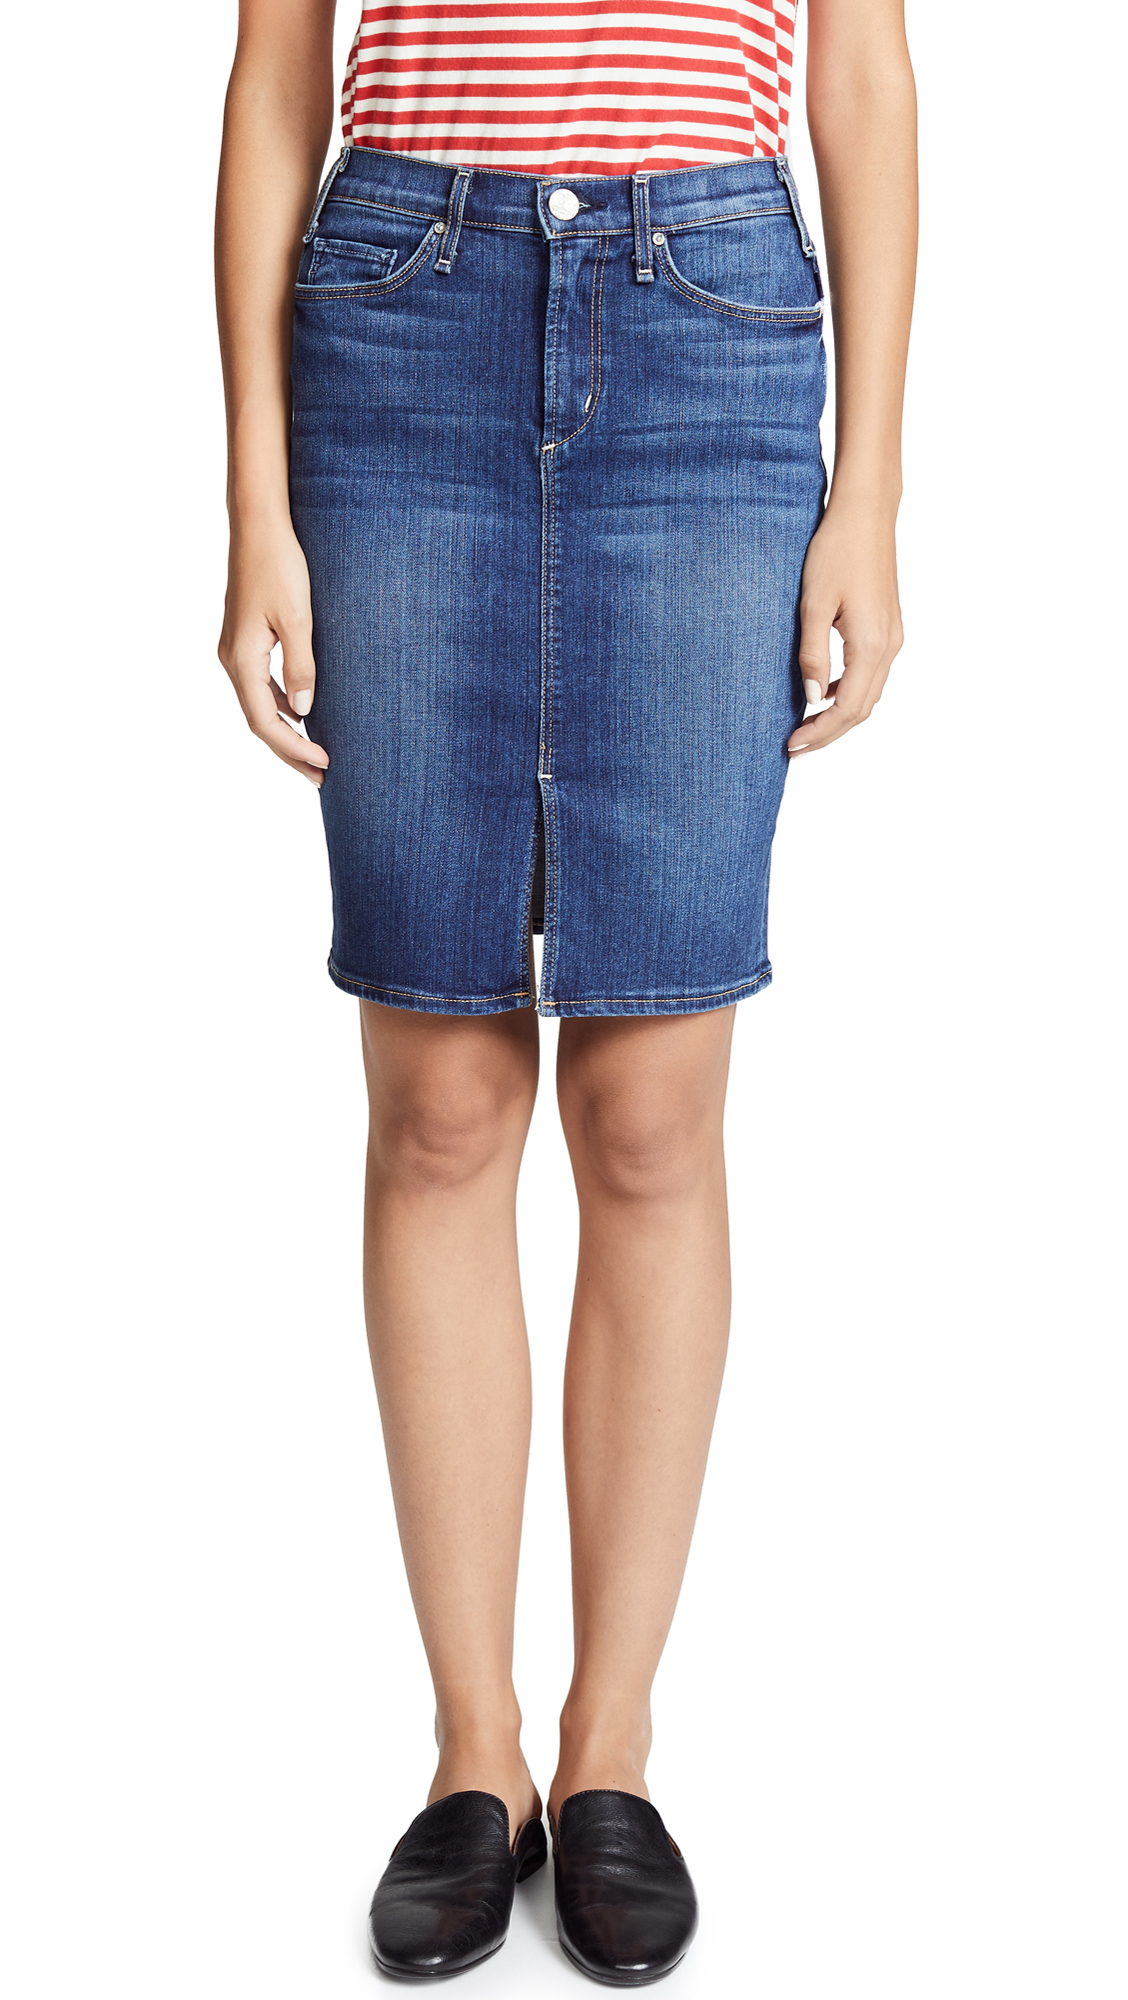 McGuire Denim Marino Skirt In All The Days